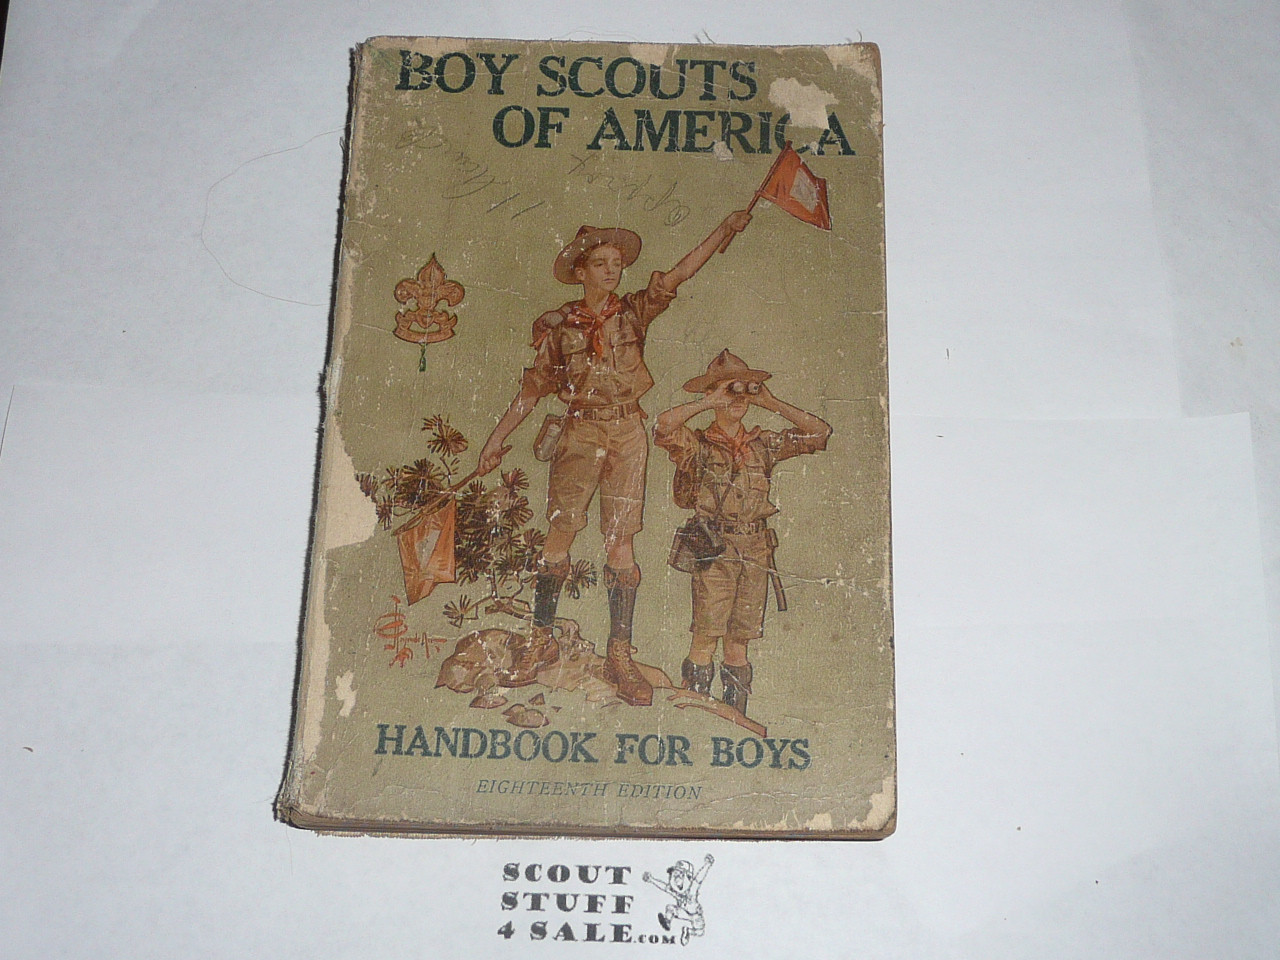 1918 Boy Scout Handbook, Second Edition, Eighteenth Printing, some spine and cover wear